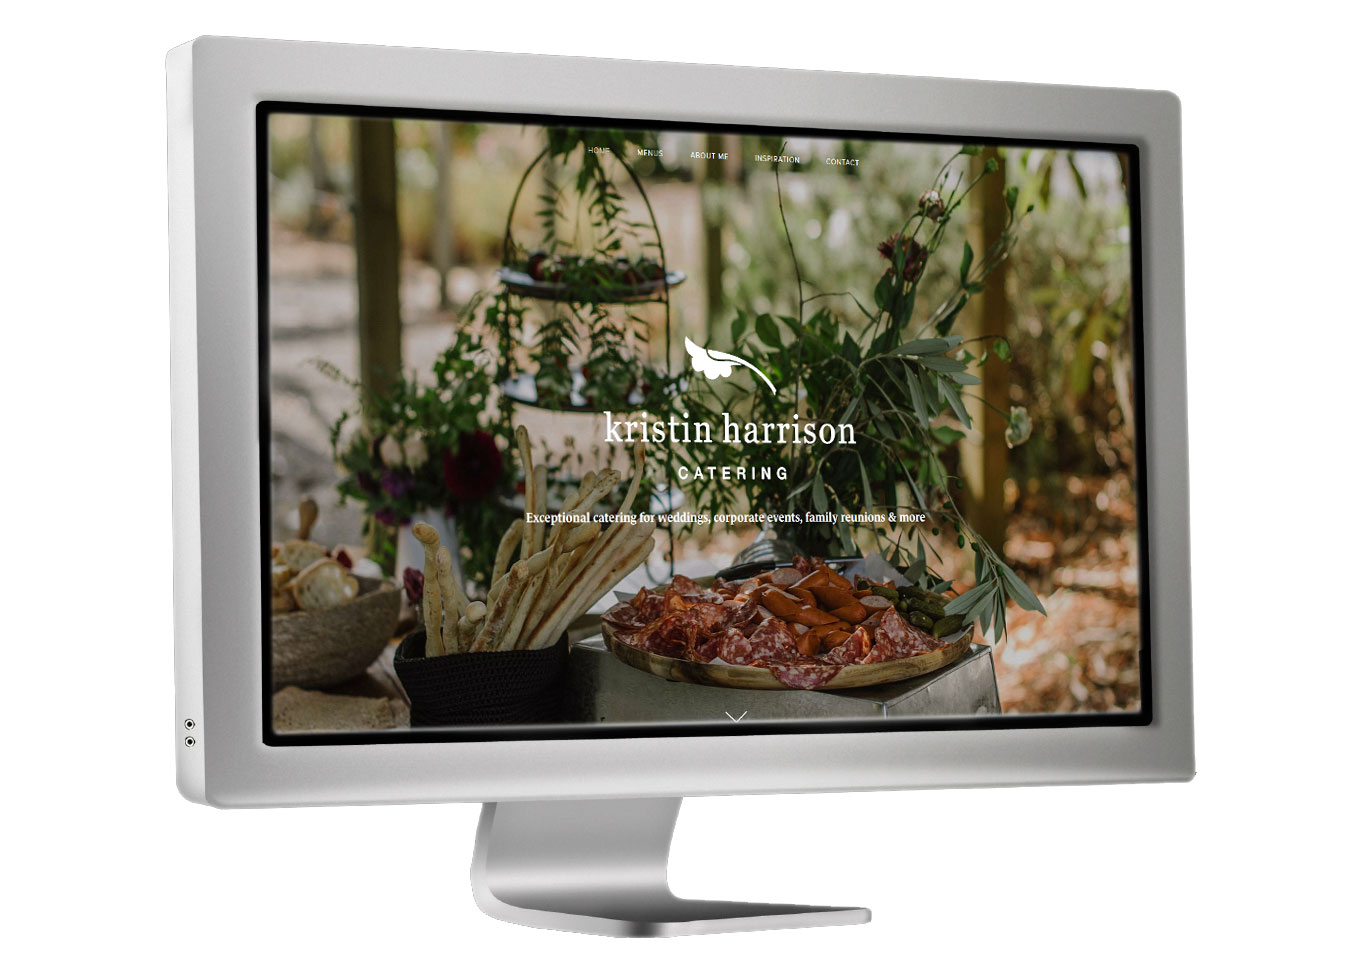 Kristin Harrison Catering website